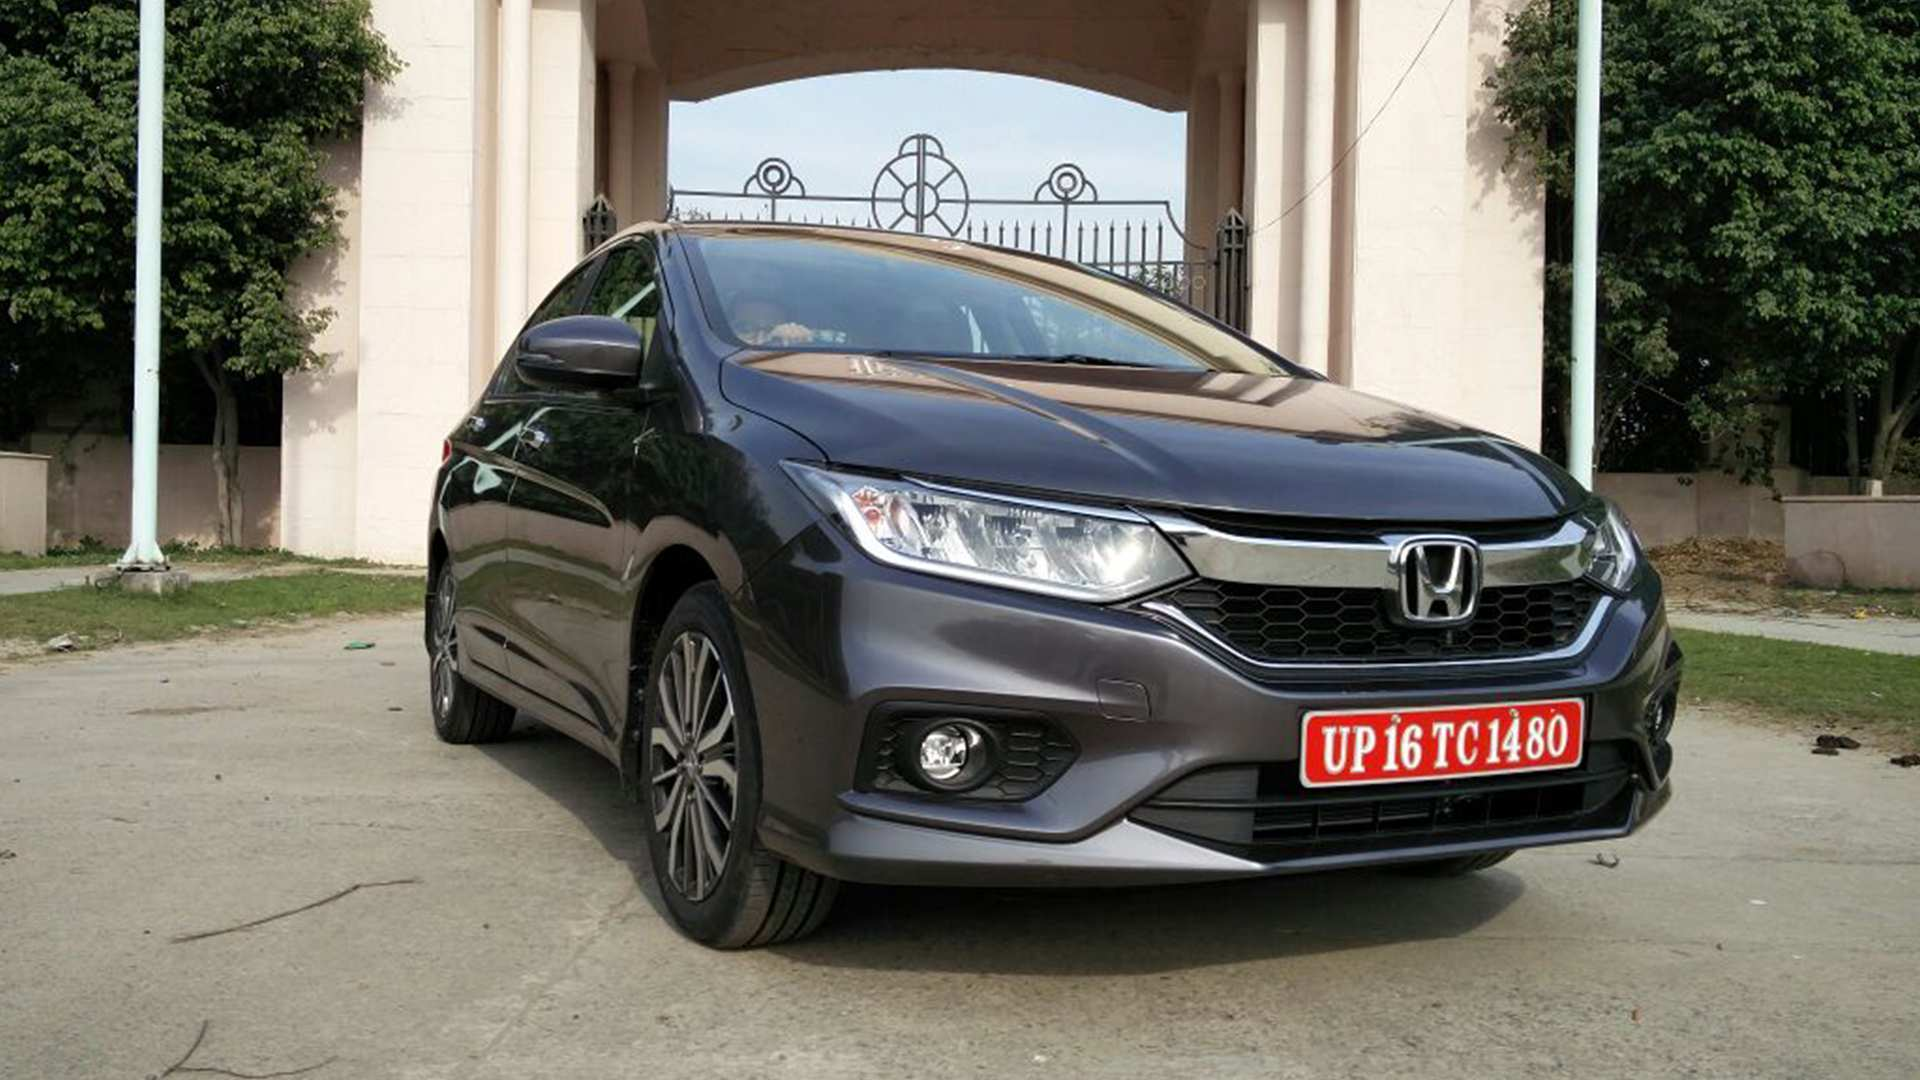 85 A 2019 Honda City Spy Shoot